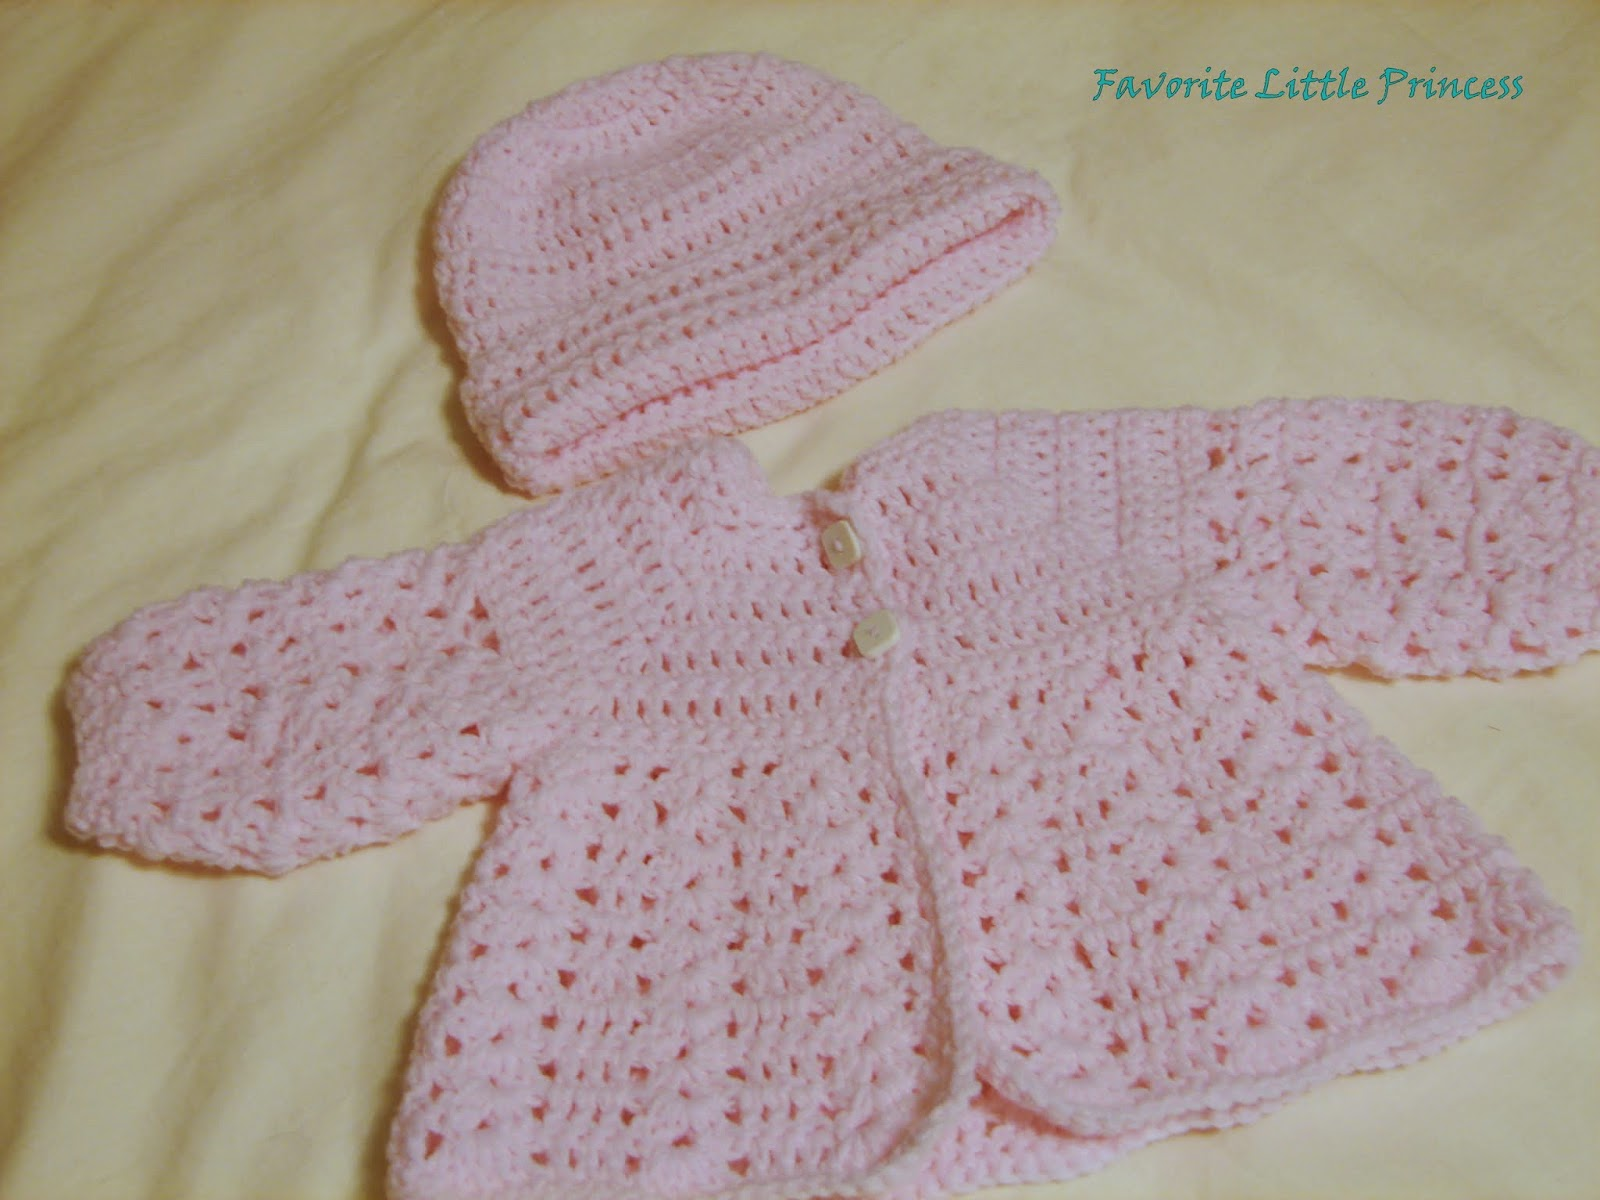 Free Crochet Patterns For Easy Baby Sweaters : Favorite Little Princess: Easy Baby Sweater and Hat